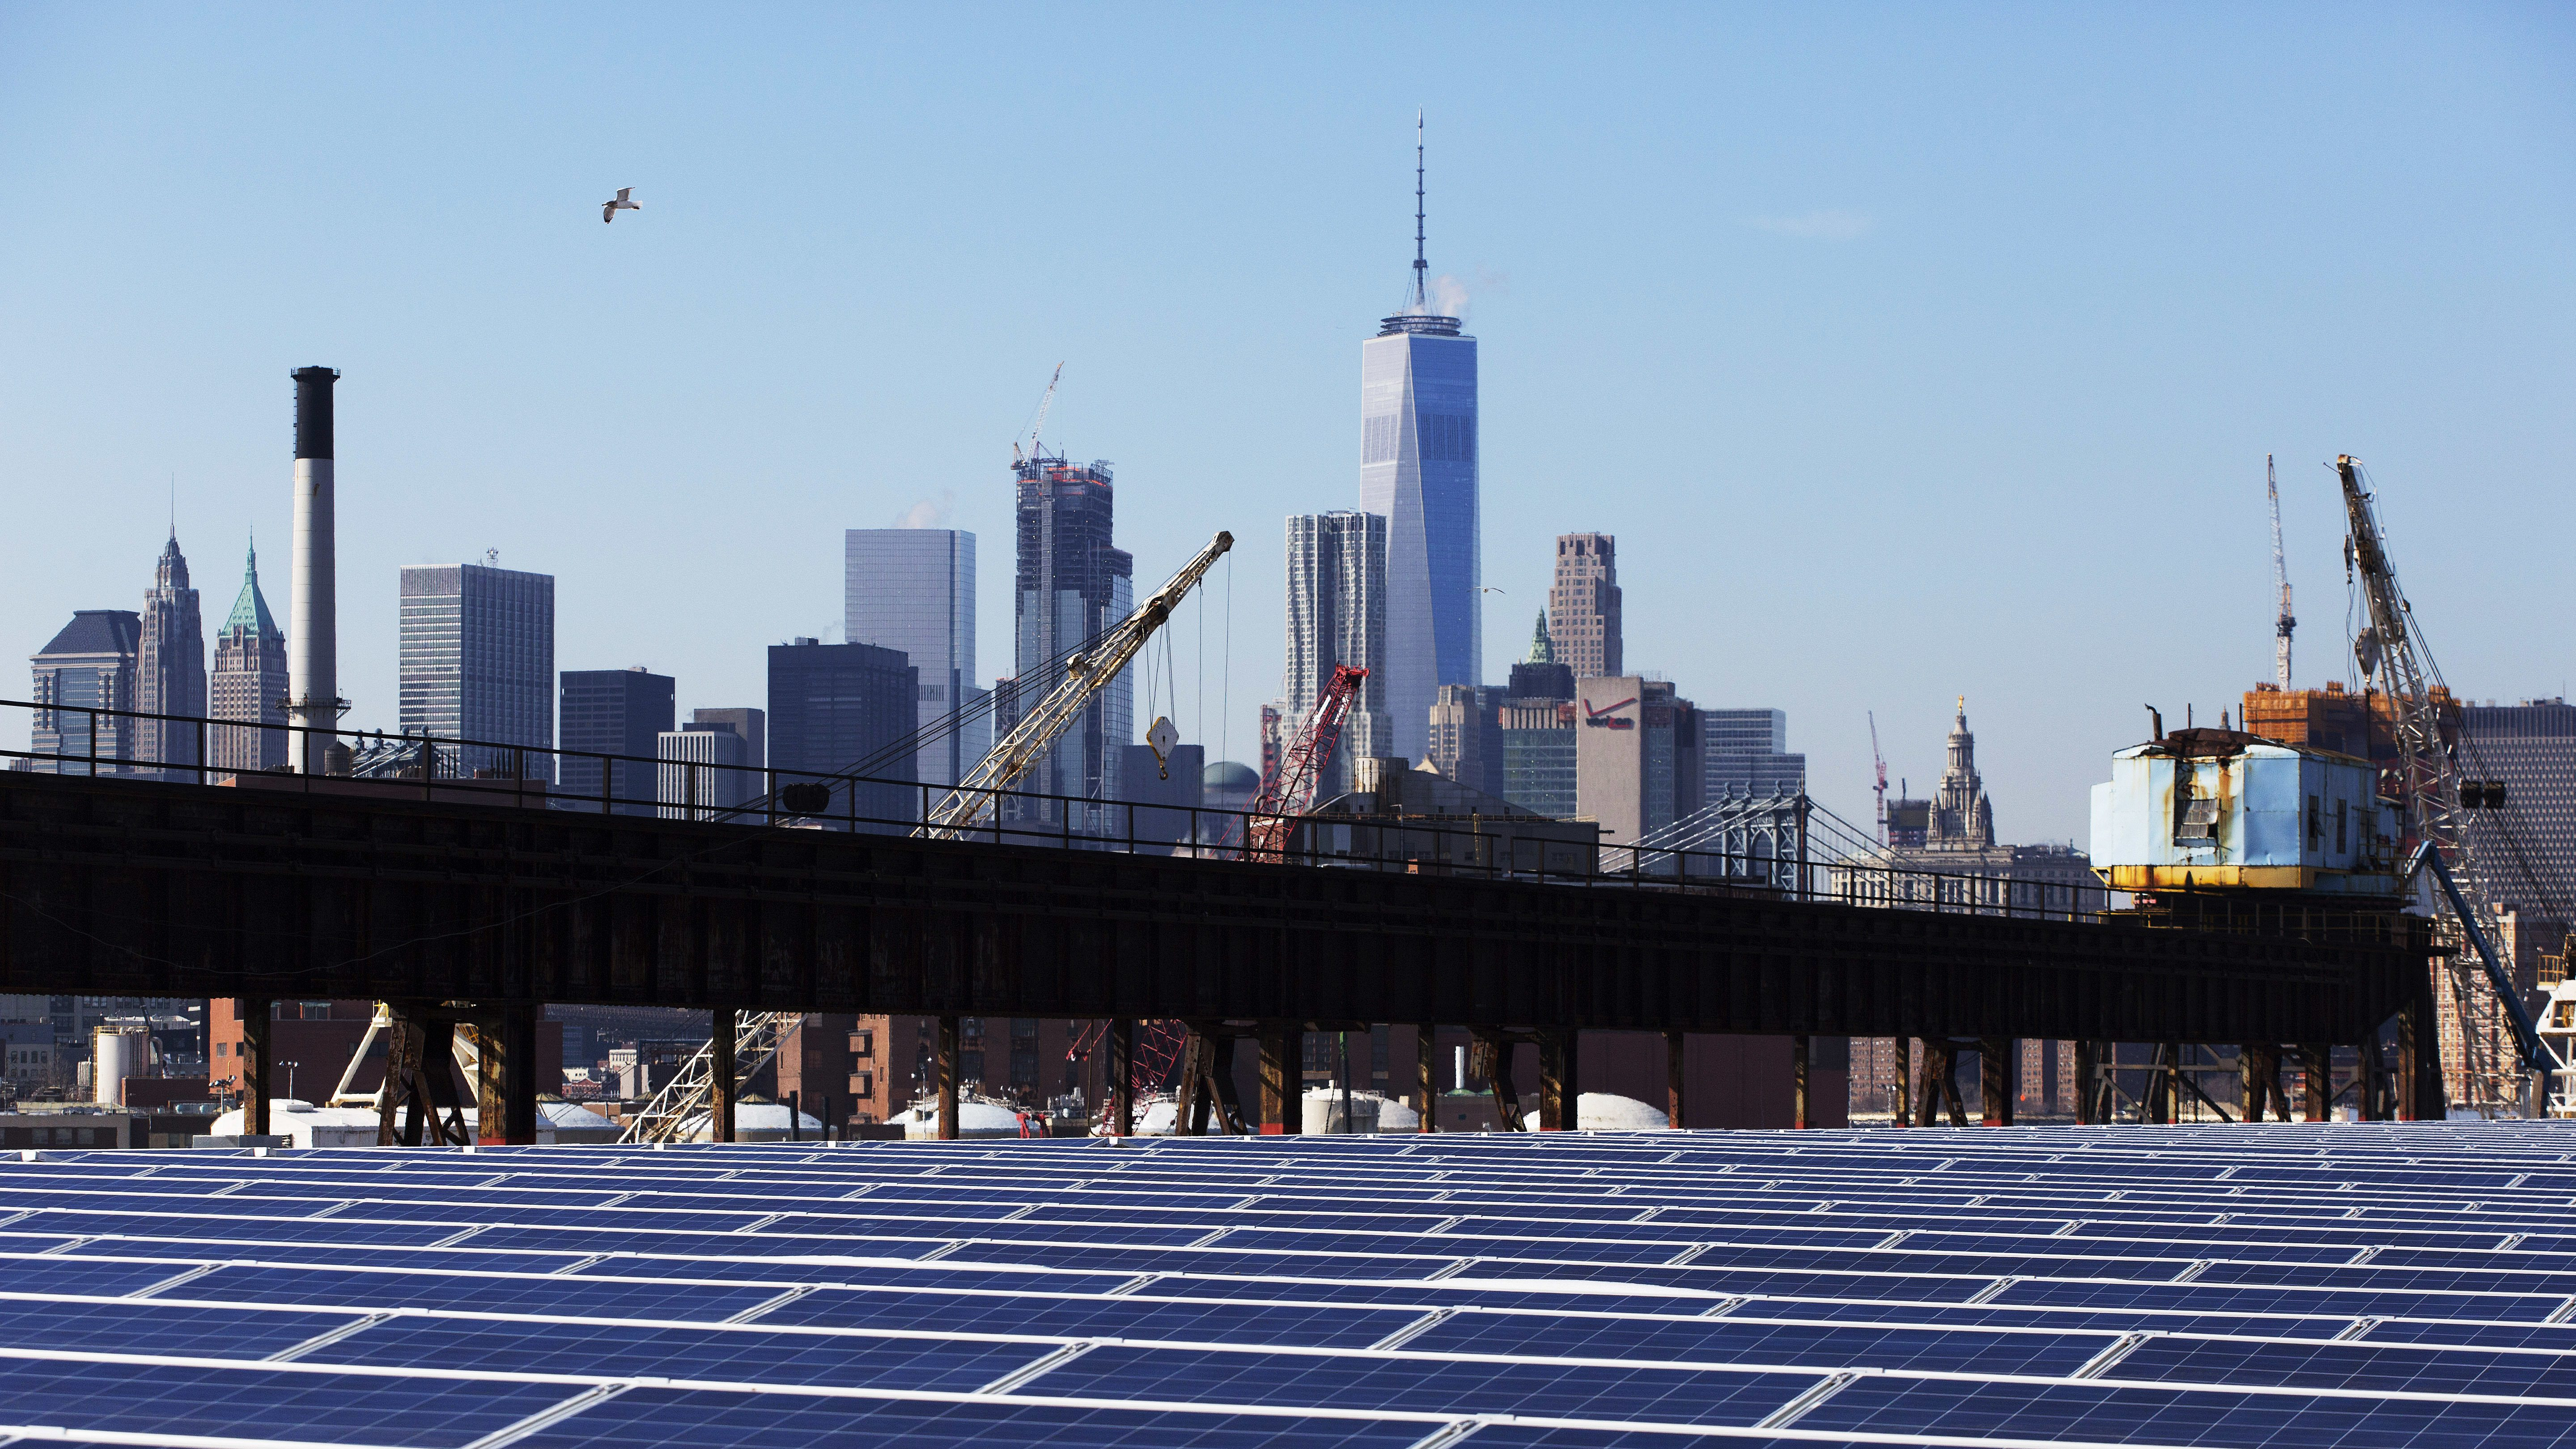 A rooftop is covered with solar panels at the Brooklyn Navy Yard, Tuesday, Feb. 14, 2017, in New York. The Manhattan skyline is at top. ConEdison Solutions installed 3,152 solar panels on the roof of Building 293 in 2016. The new panels will generate 1.1 million kilowatt hours of energy per year, according to the mayor's office. The New York State Energy Research and Development Authority provided more than $600,000 in incentives for the project. (AP Photo/Mark Lennihan)